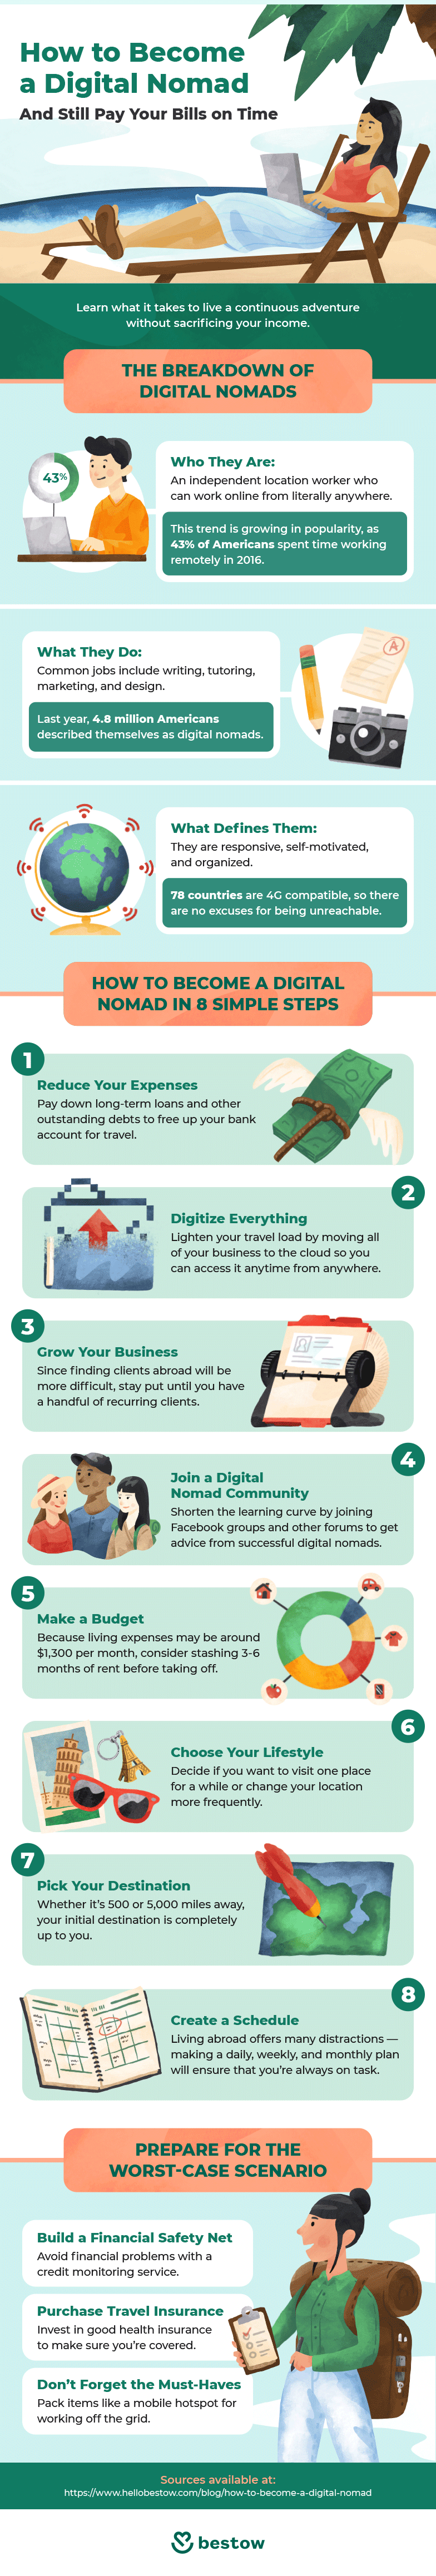 Are you tired of working at a desk all day? Dream of sunny beaches? The digital nomad life is calling! Check out this handy guide from Bestow and get started!